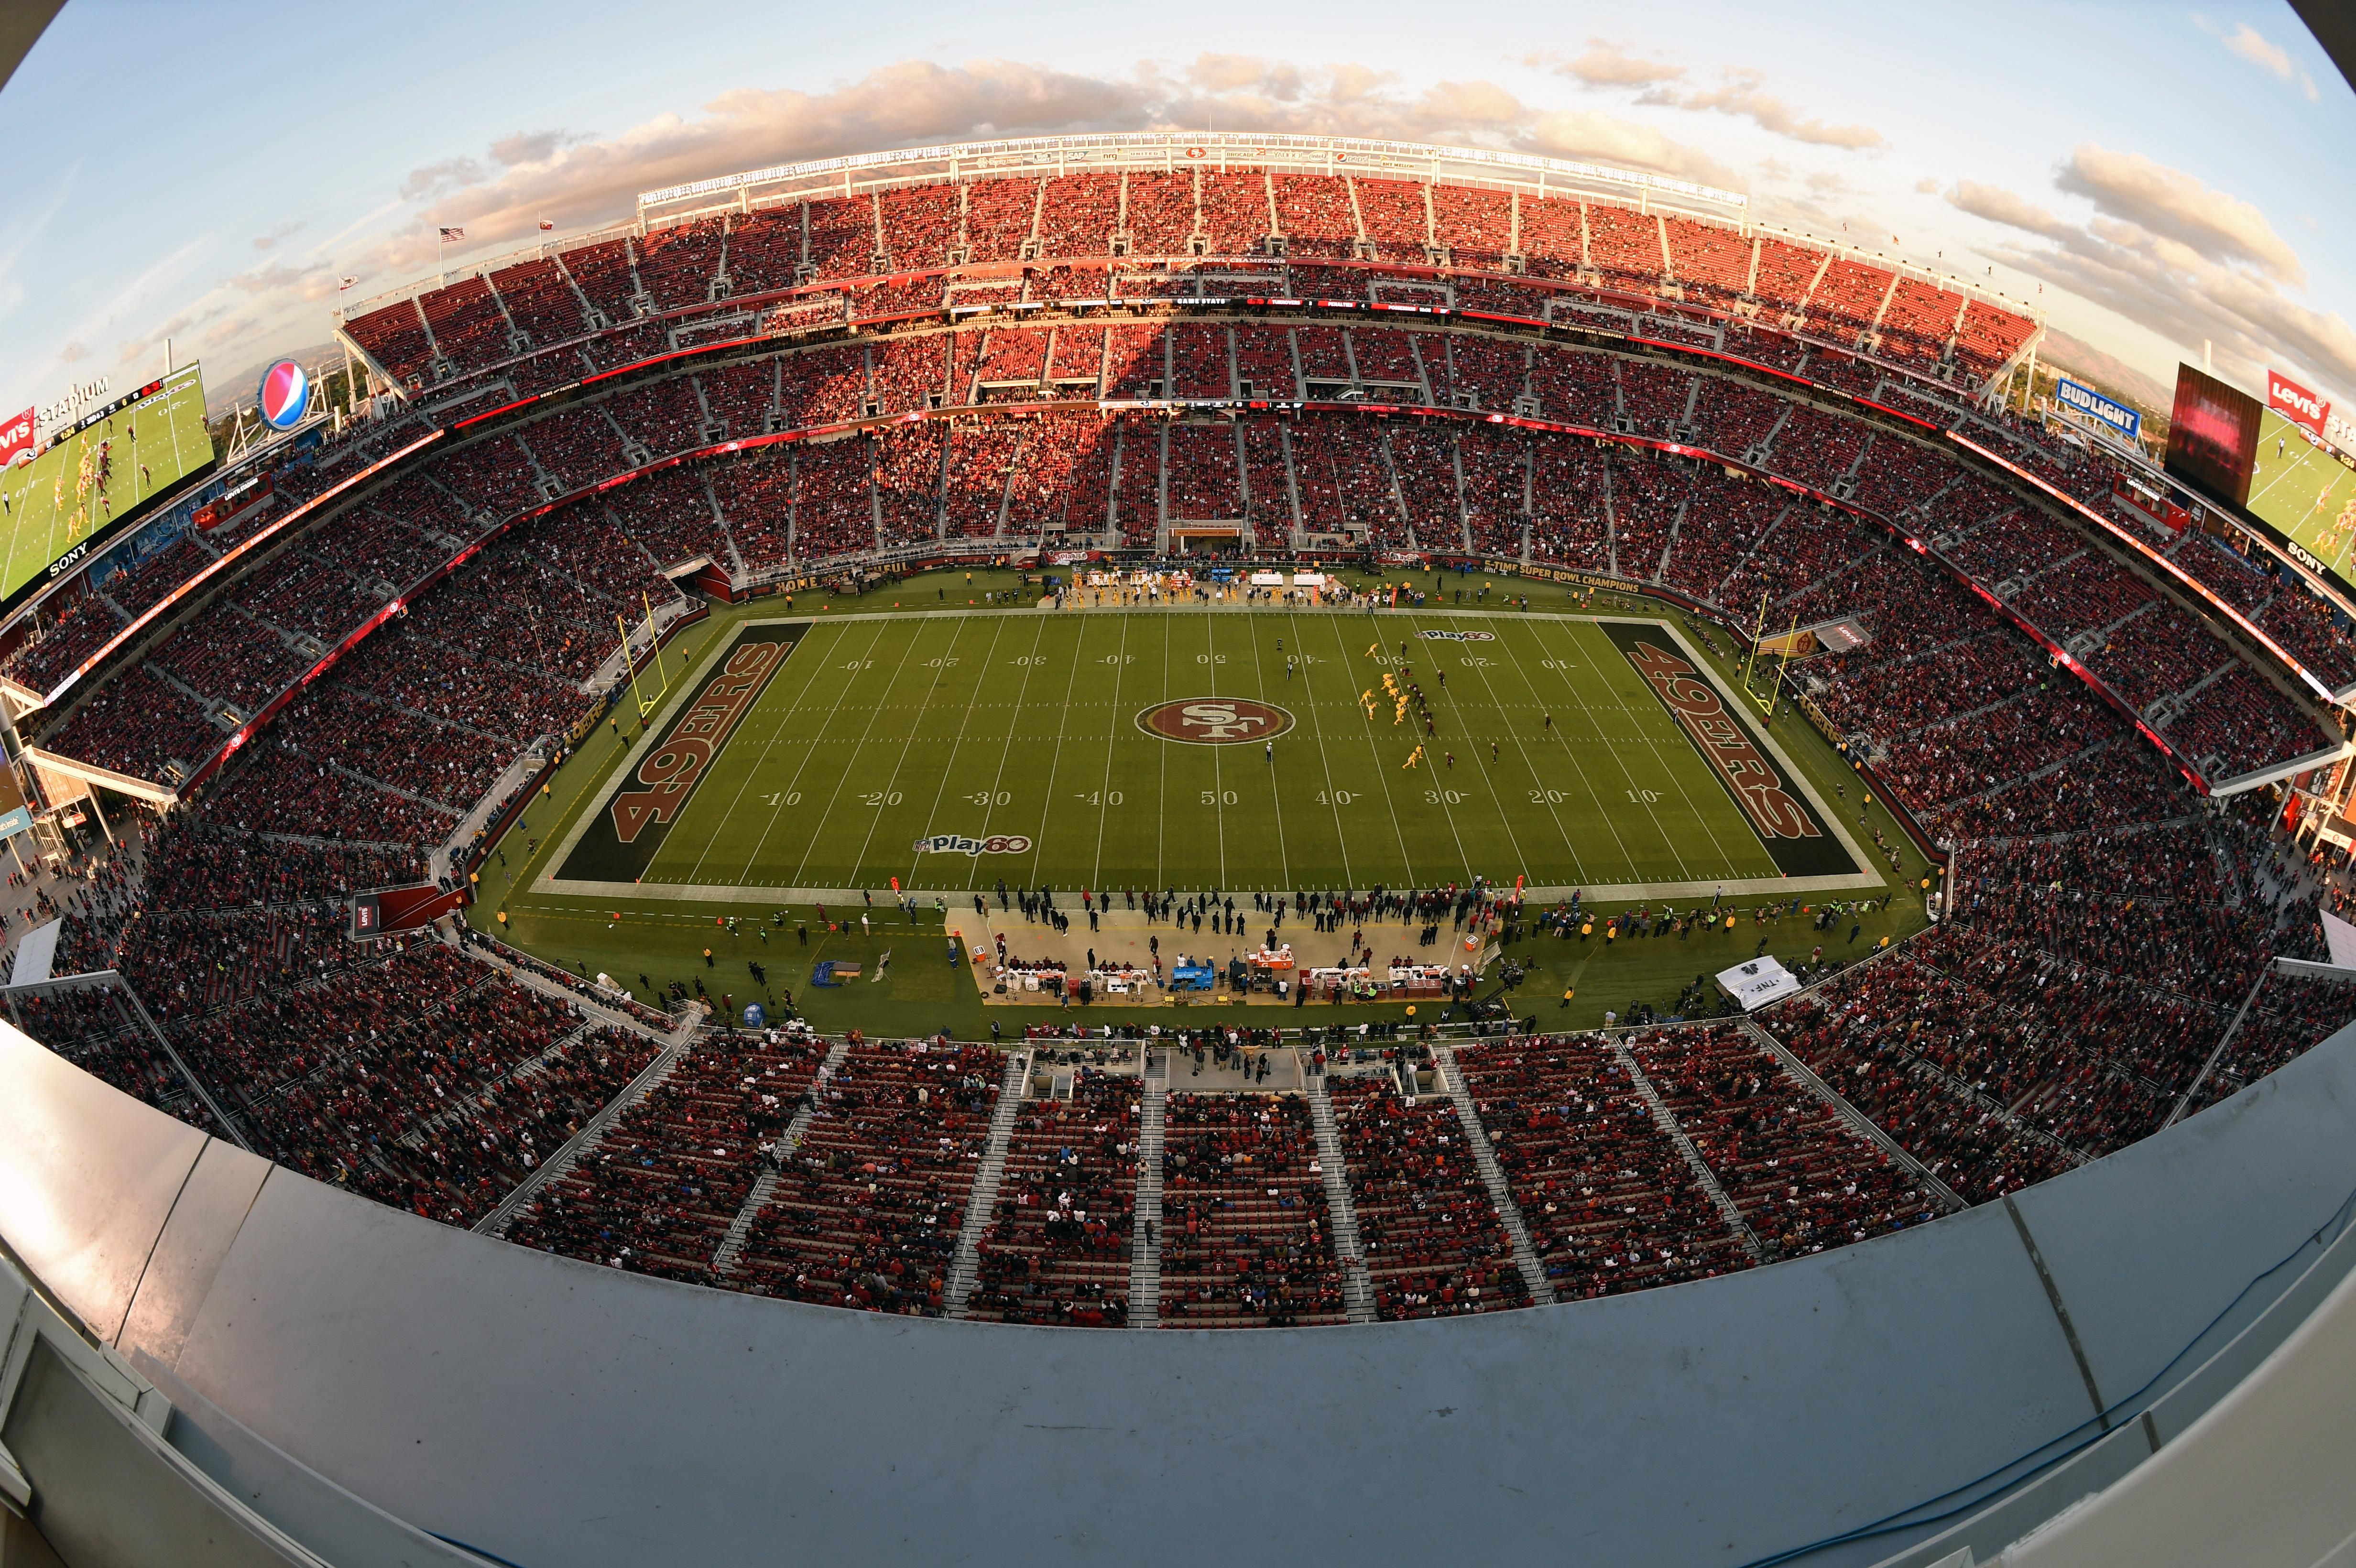 The Levi's Stadium is No7 on our list and home to the San Francisco 49ers